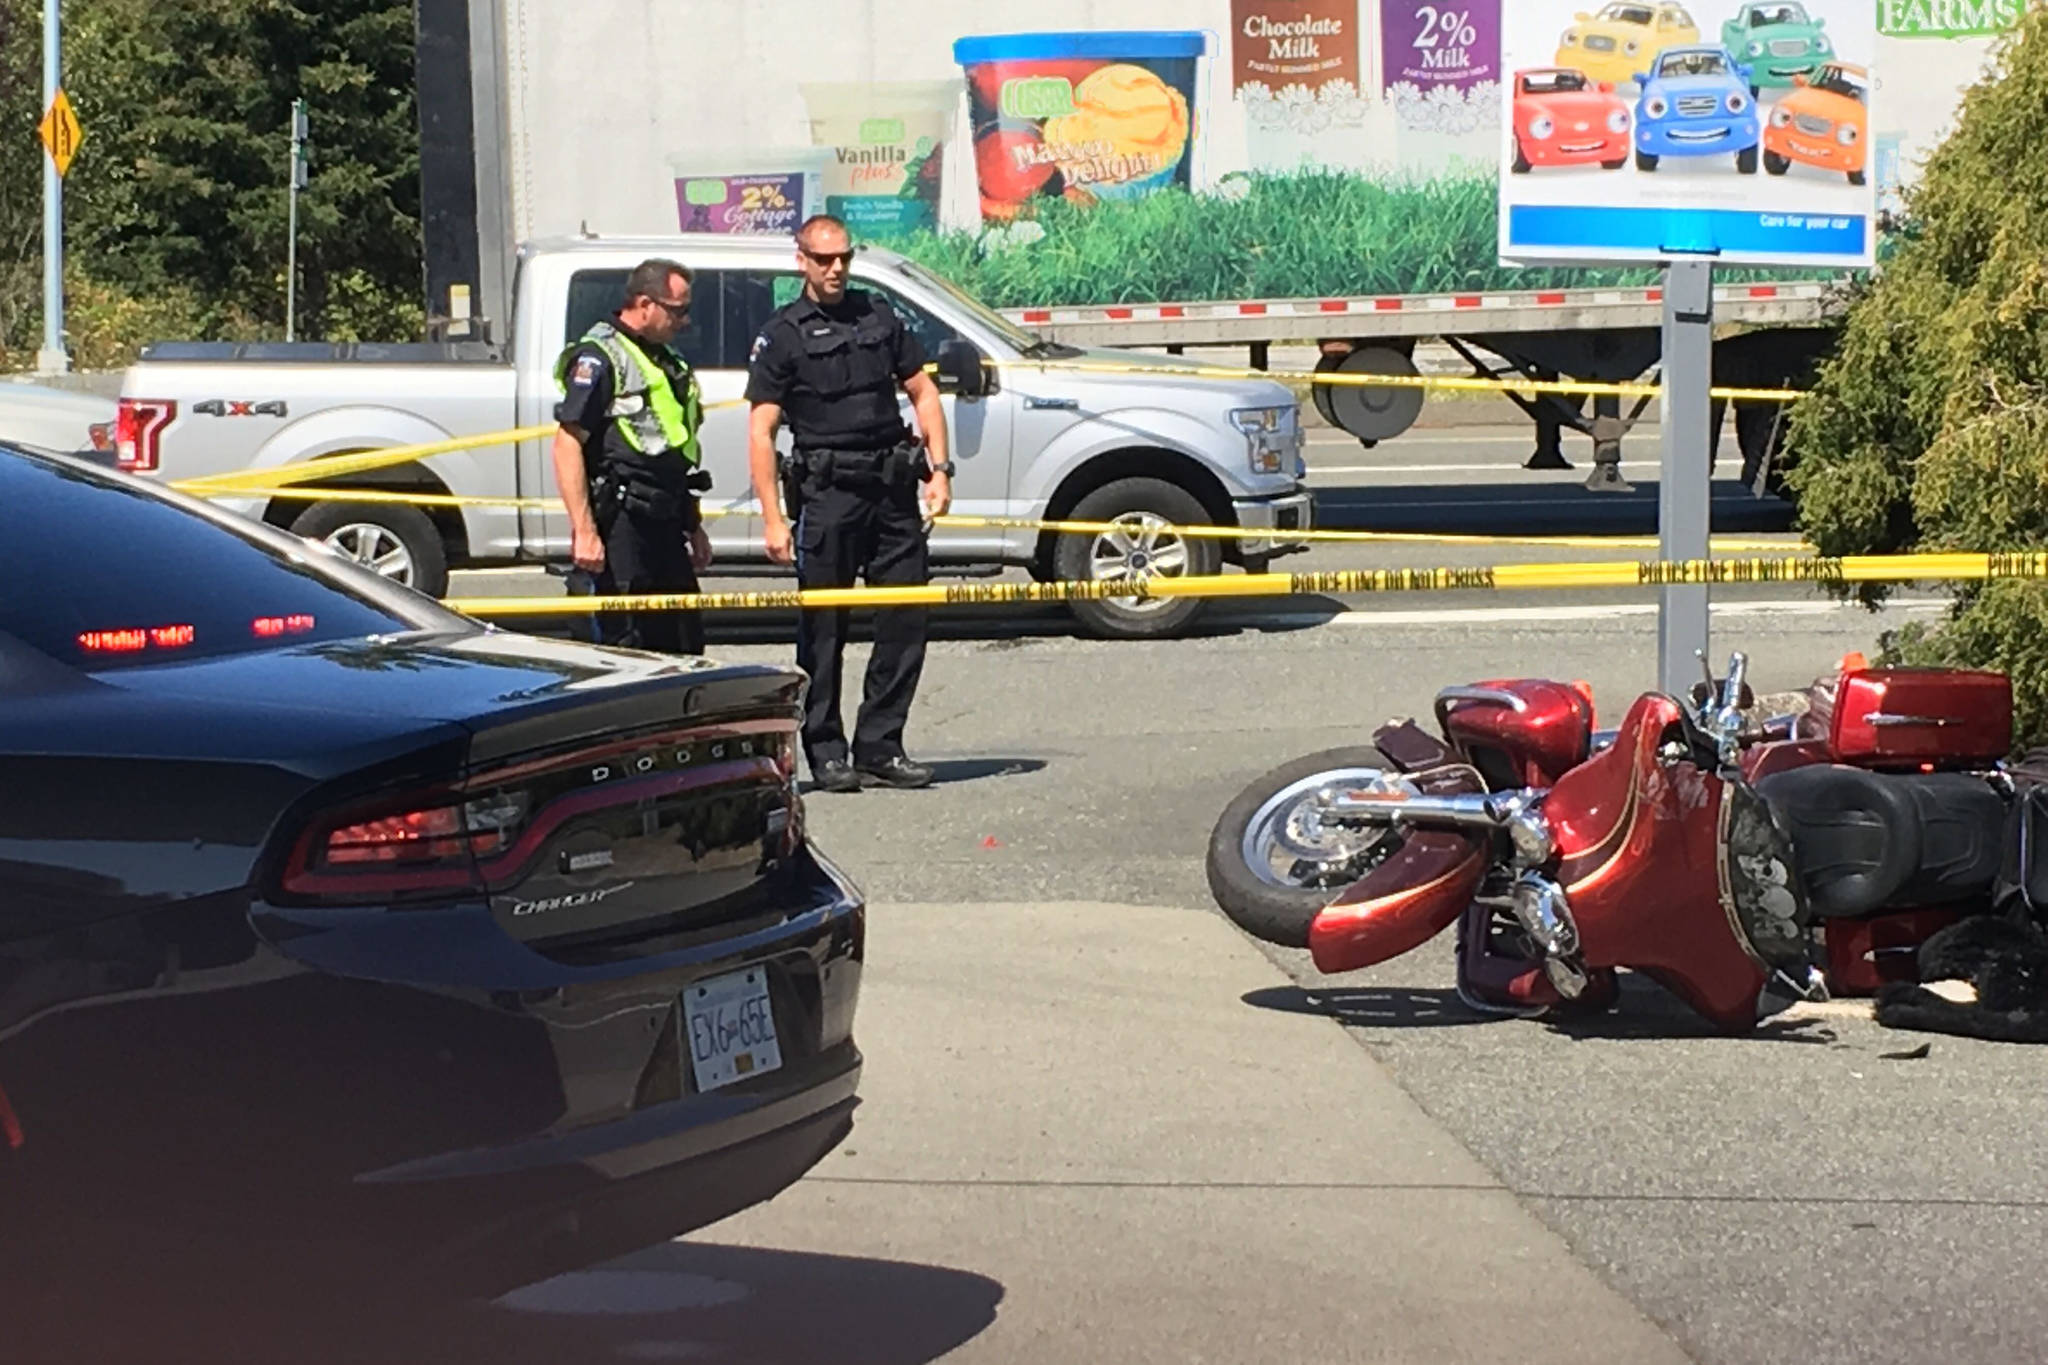 A motorcycle sits on its side and Saanich police officers keep an eye on the scene after a crash at Tillicum Road and the Trans-Canada Highway on Thursday. (Devon Bidal/News Staff)